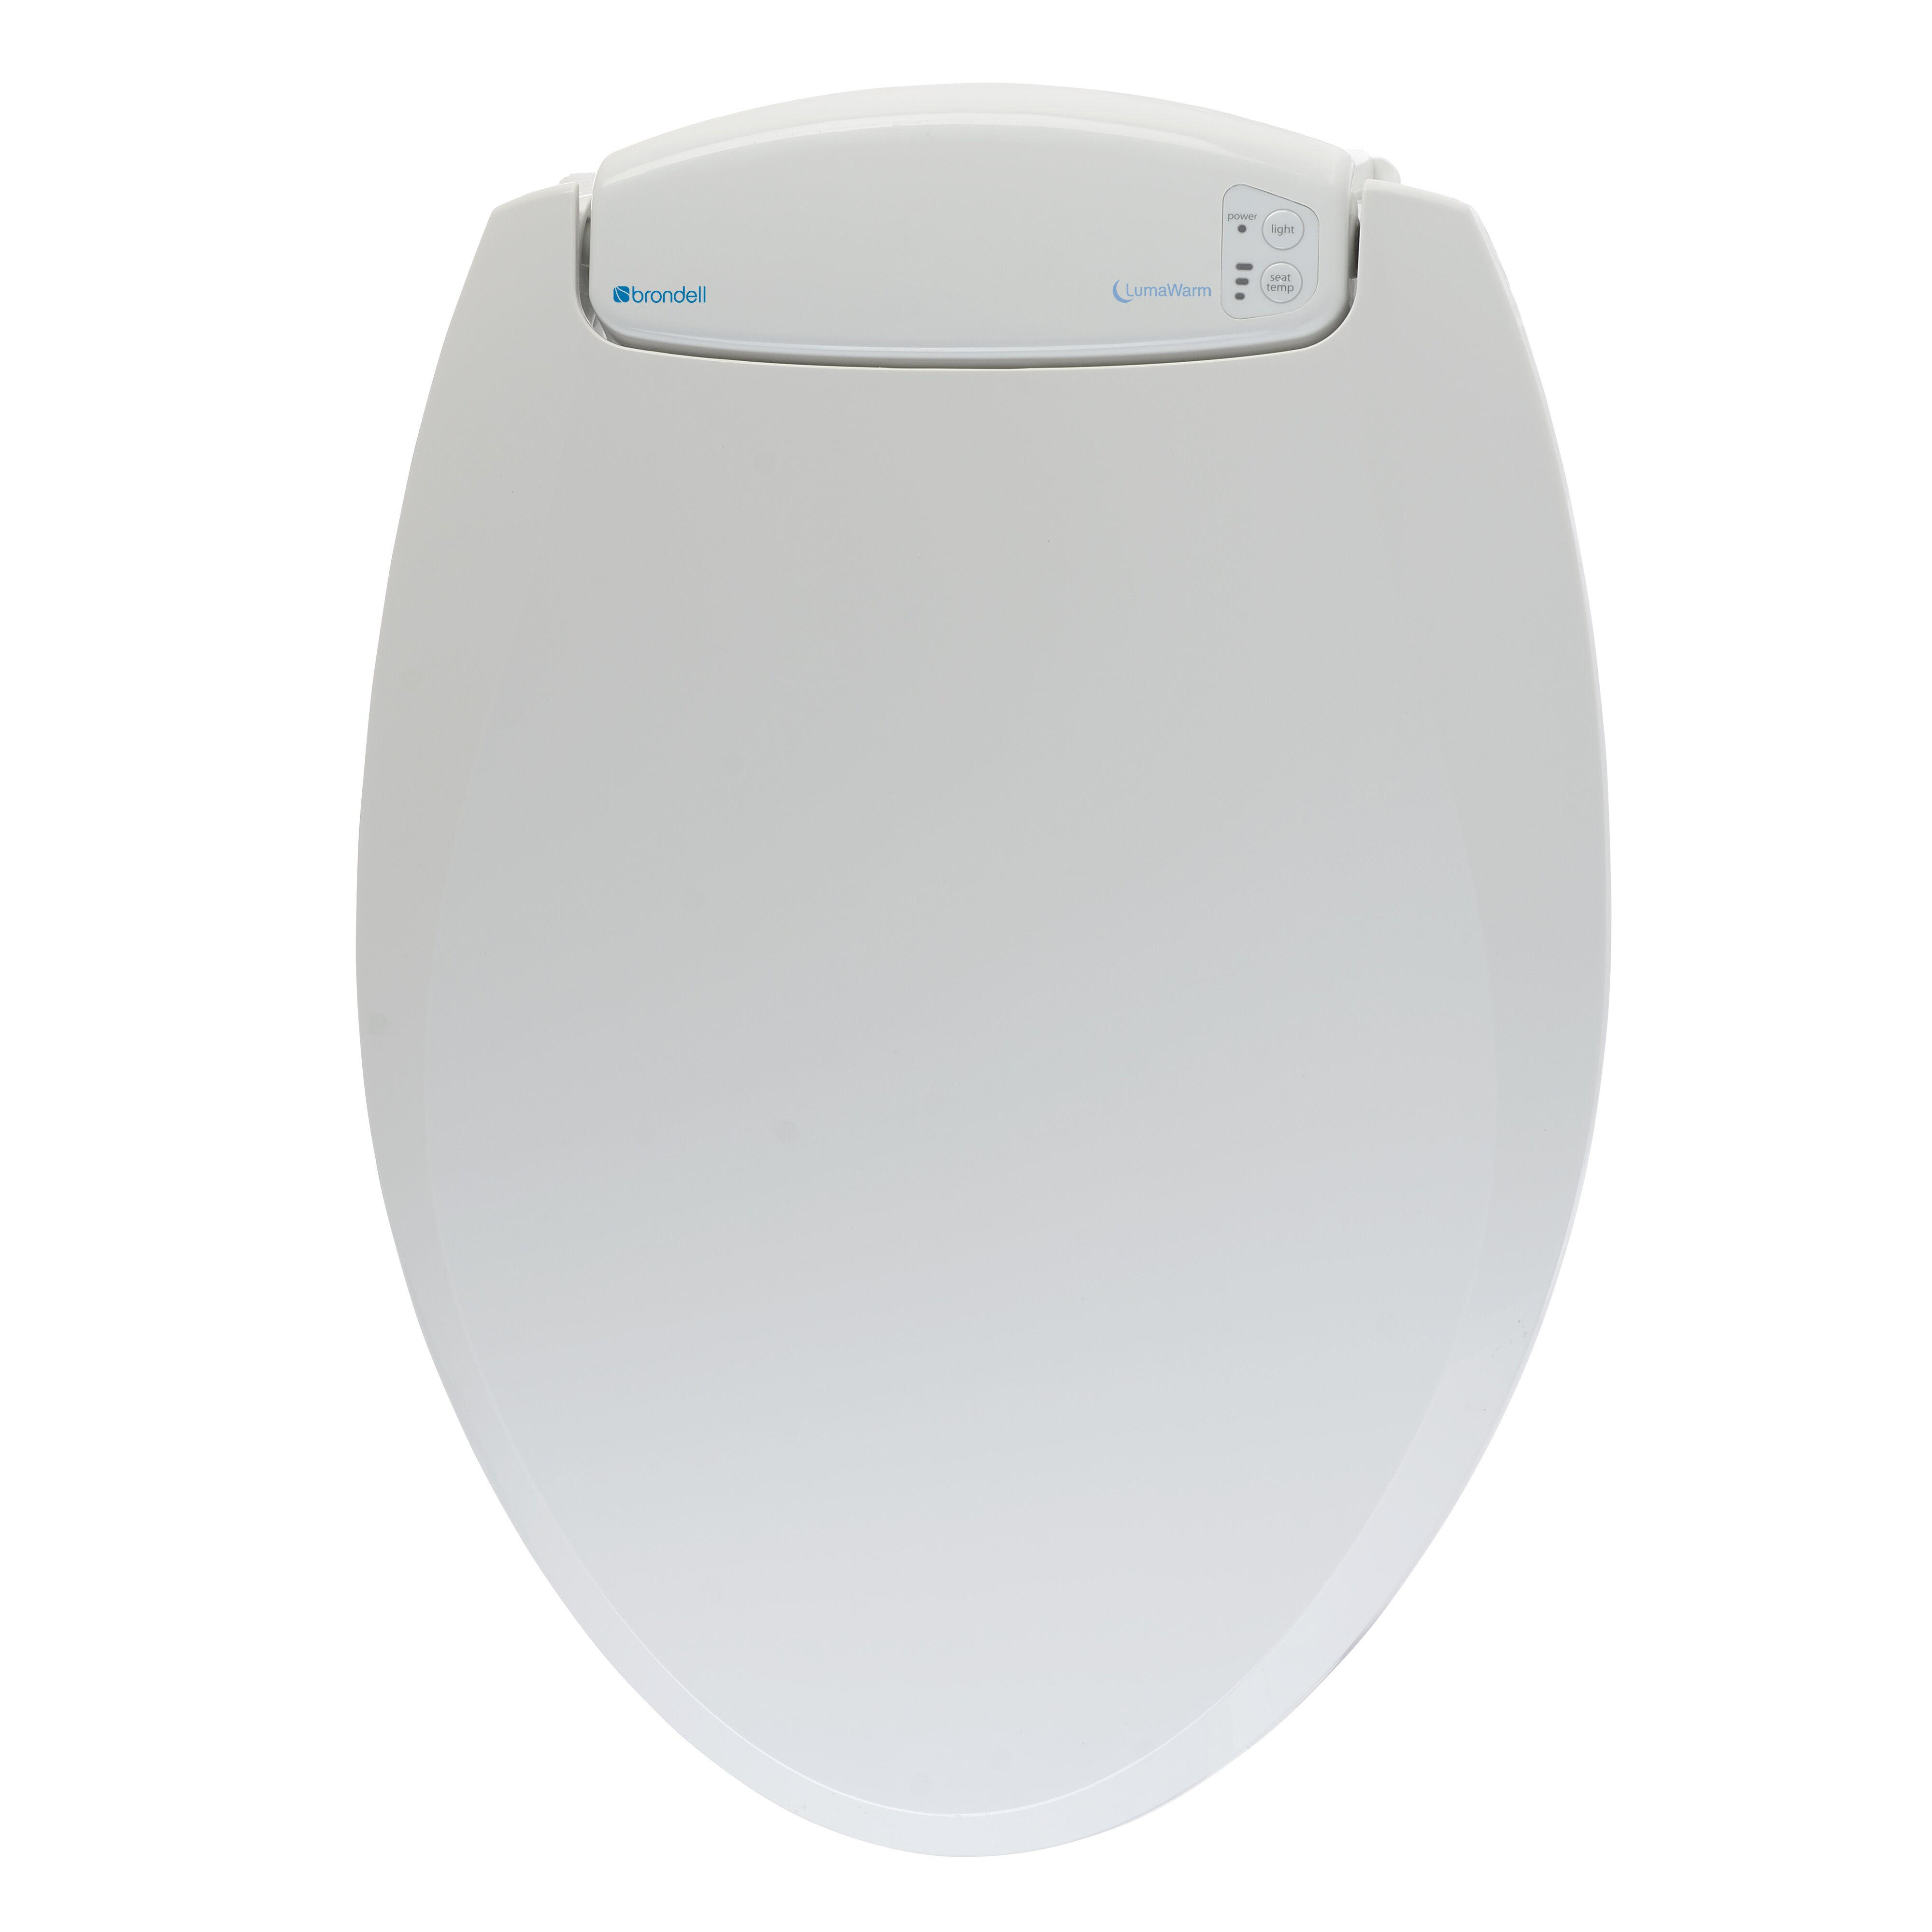 Brondell Lumawarm Heated Nightlight Toilet Seat Amp Reviews